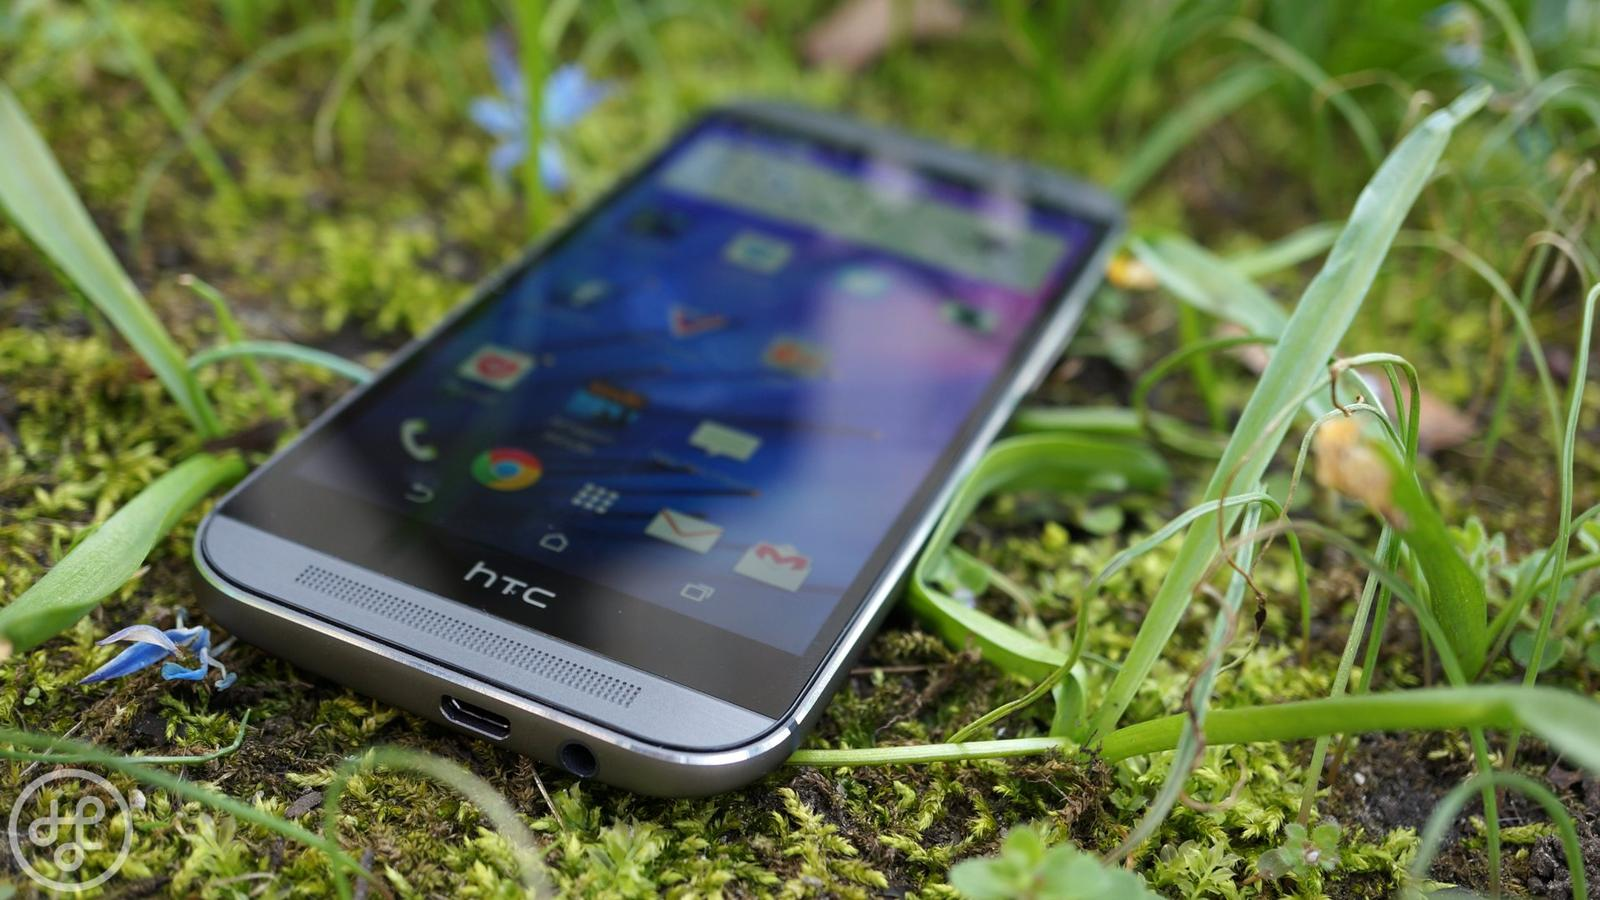 HTC One Lead